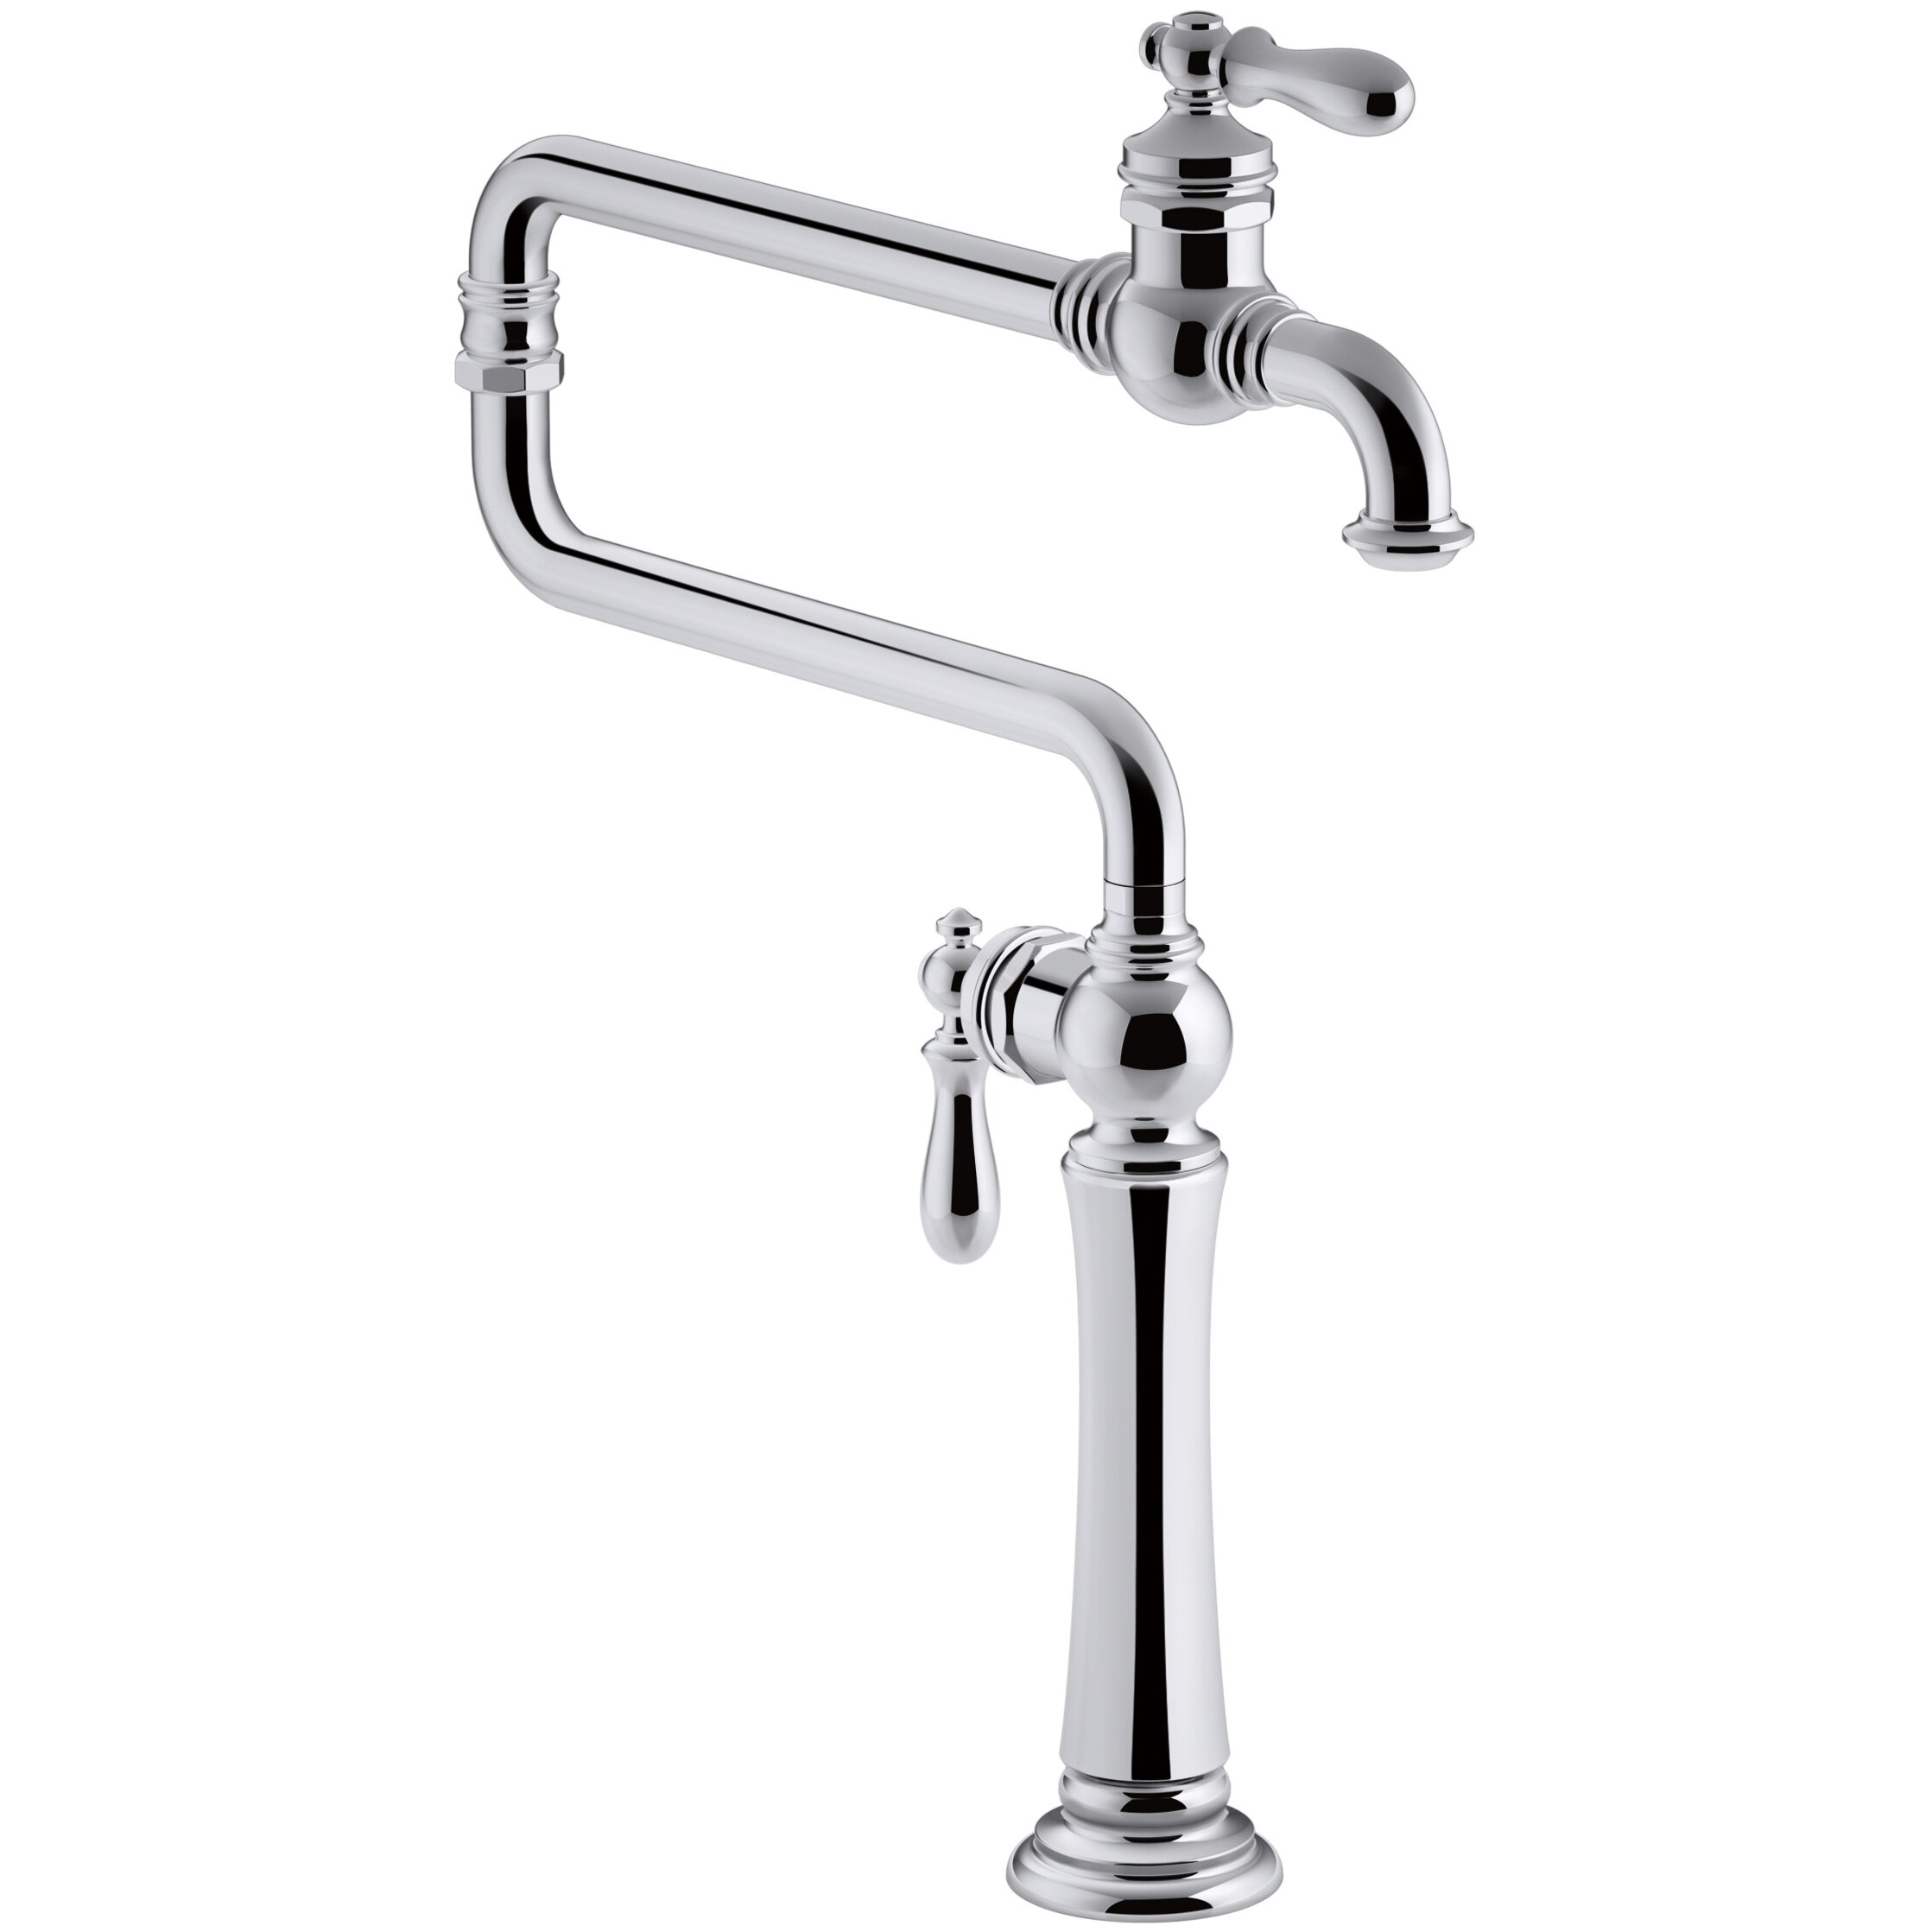 Pot Sink Faucet : Kohler Artifacts Single-Hole Deck-Mount Pot Filler Kitchen Sink Faucet ...